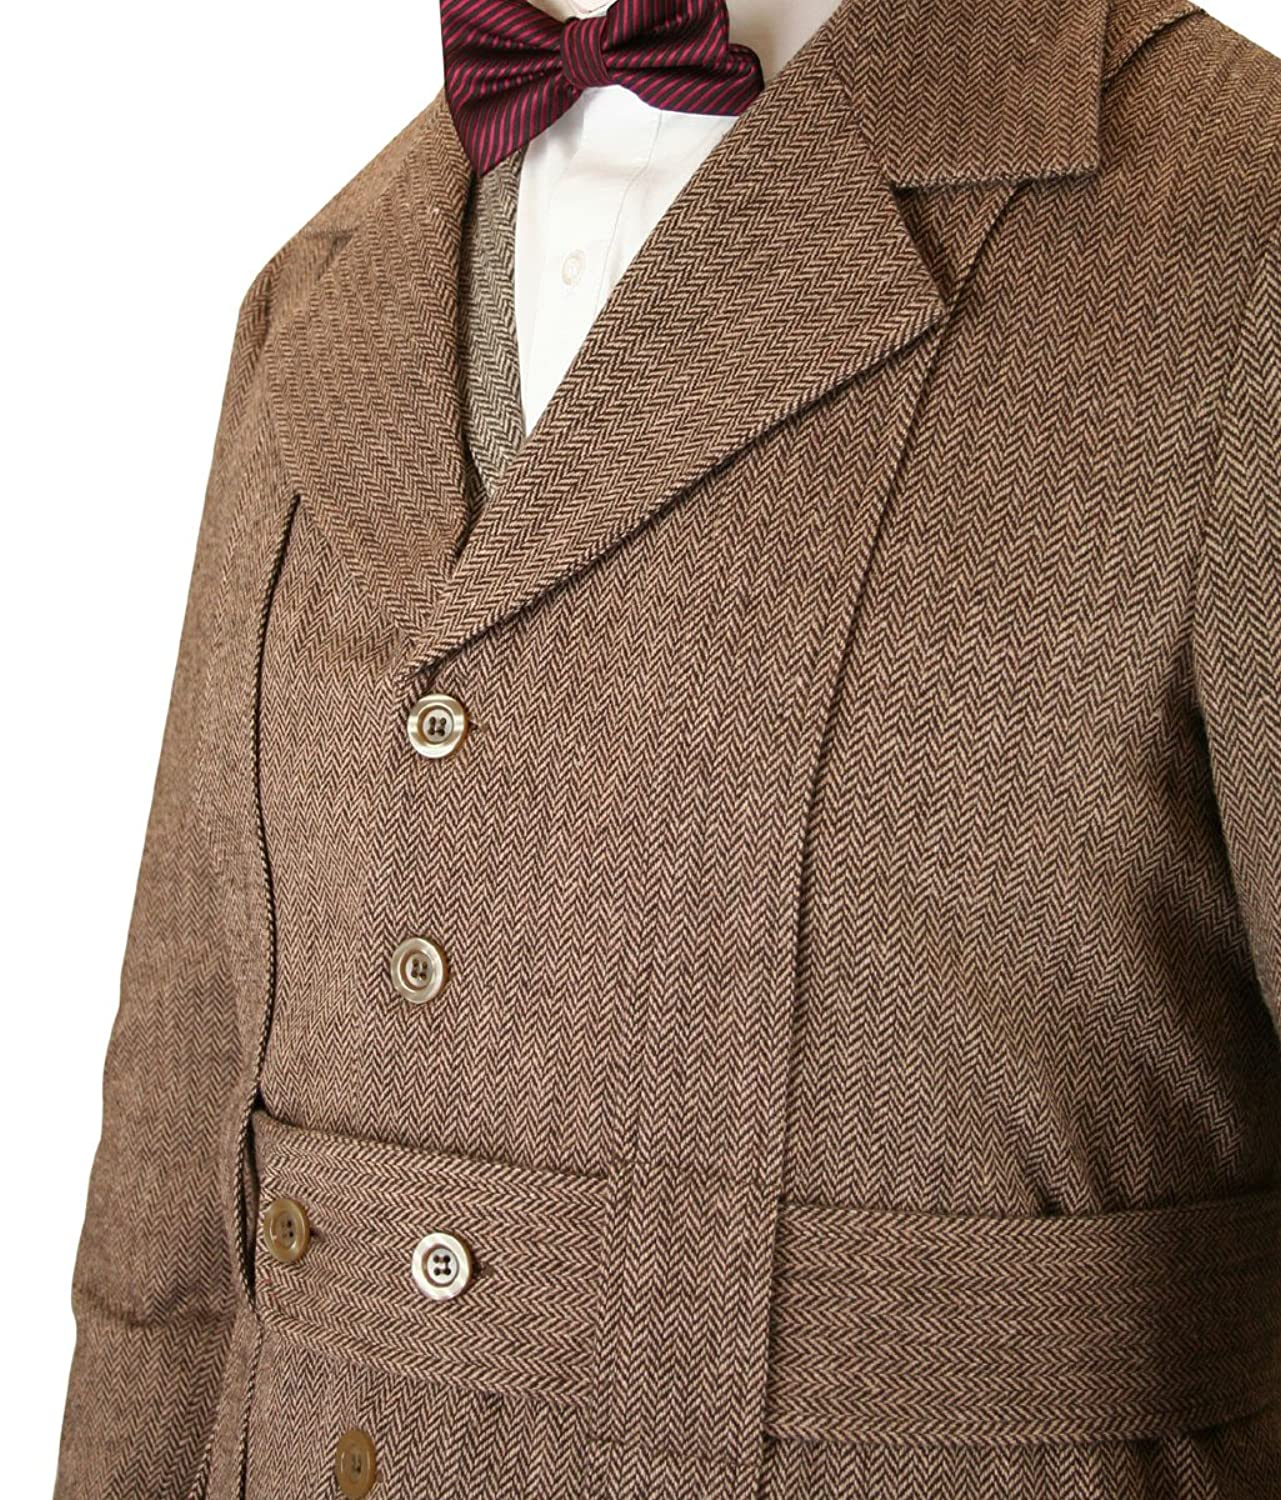 Men's Vintage Style Coats and Jackets Historical Emporium Mens Norfolk Wool Blend Herringbone Tweed Jacket $149.95 AT vintagedancer.com